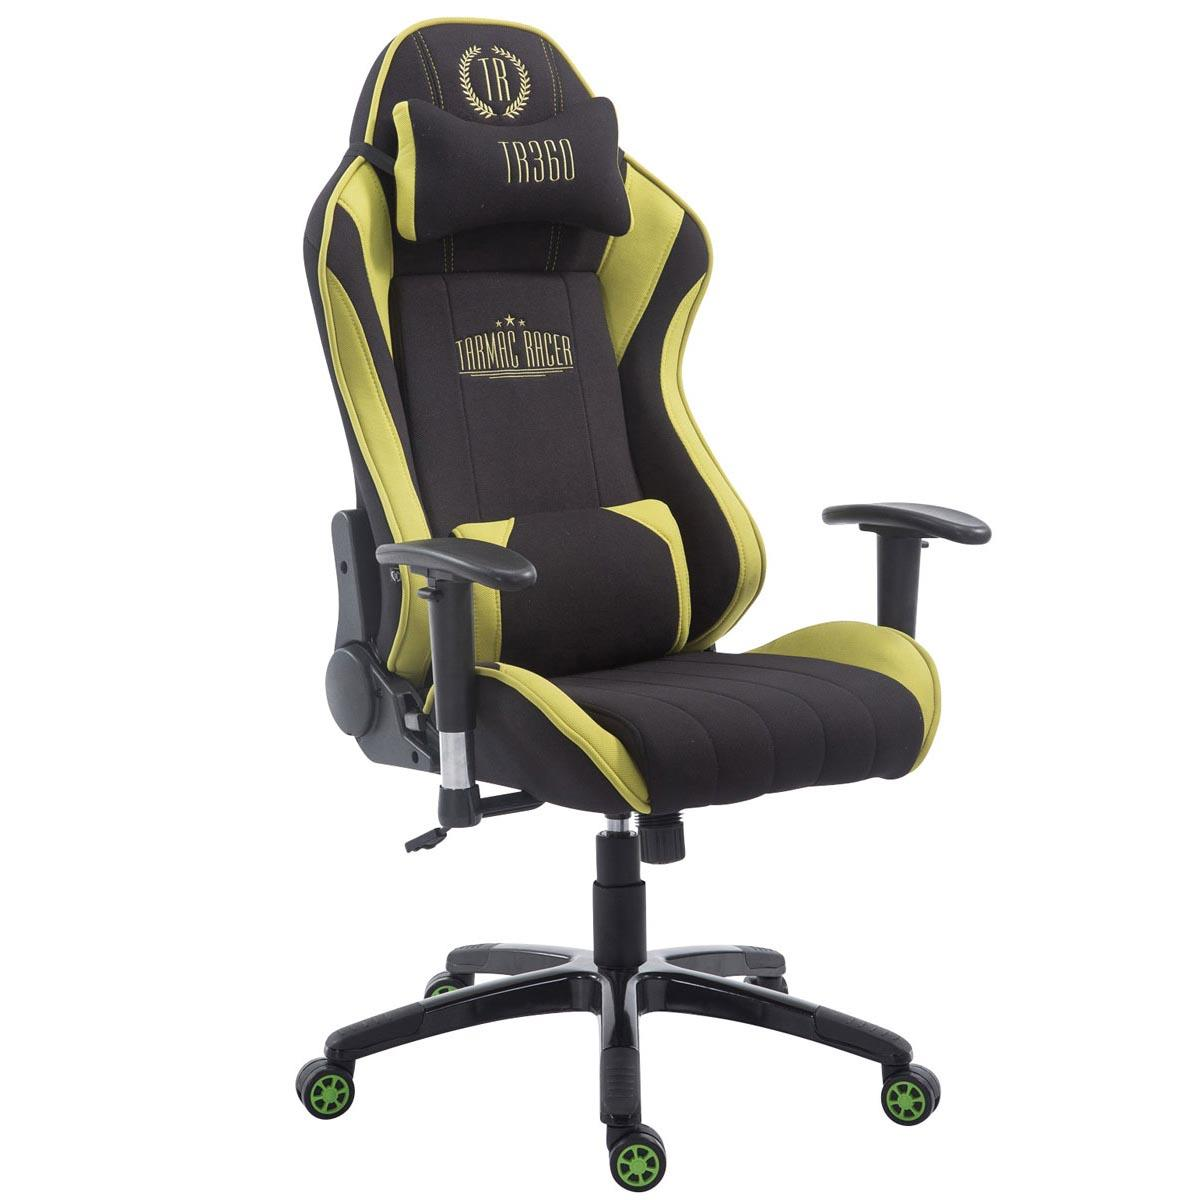 fauteuil gamer turbo tissu inclinable coussins tissu